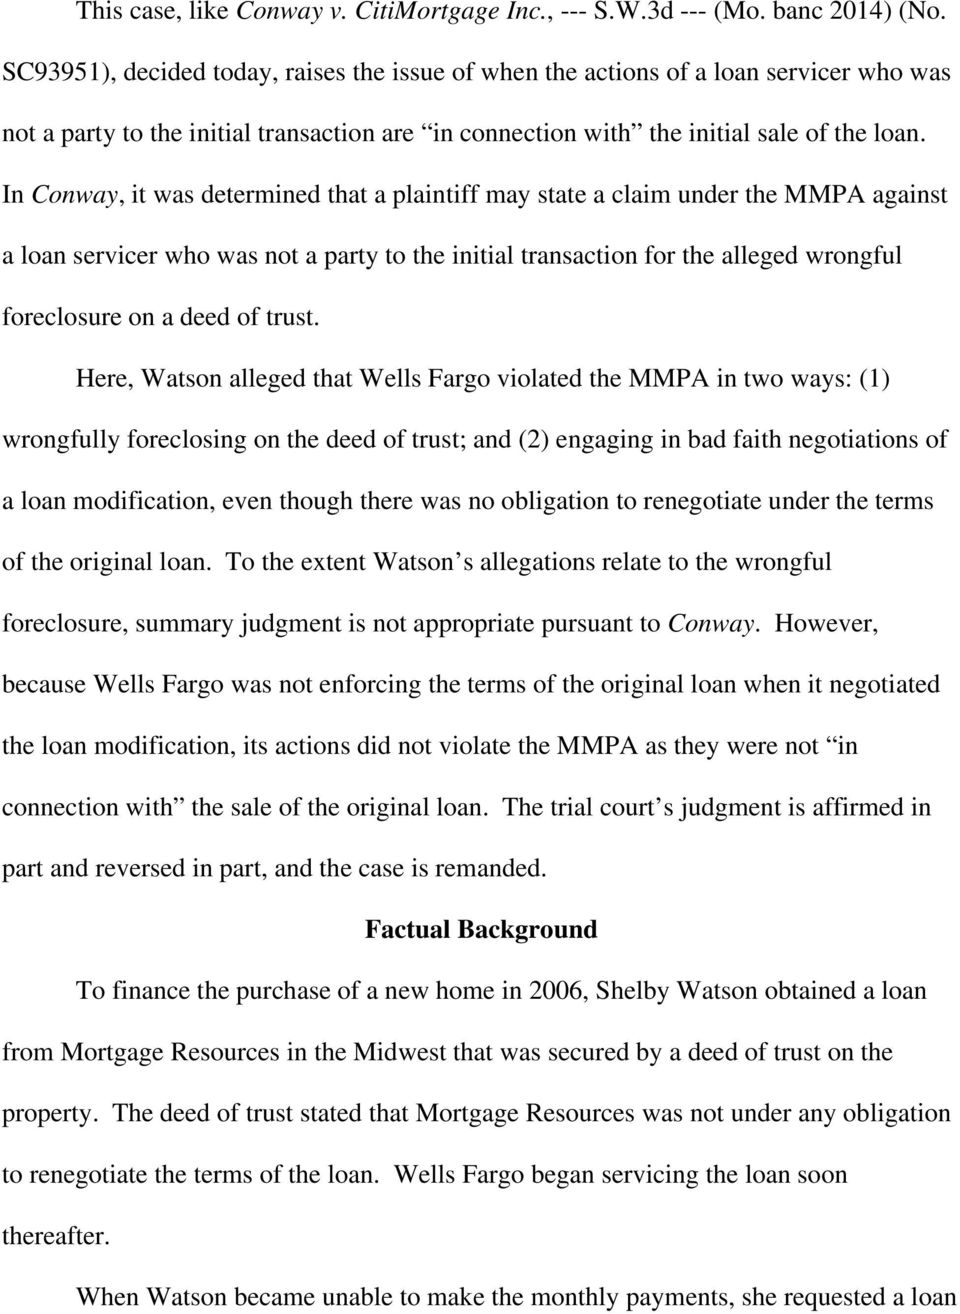 In Conway, it was determined that a plaintiff may state a claim under the MMPA against a loan servicer who was not a party to the initial transaction for the alleged wrongful foreclosure on a deed of